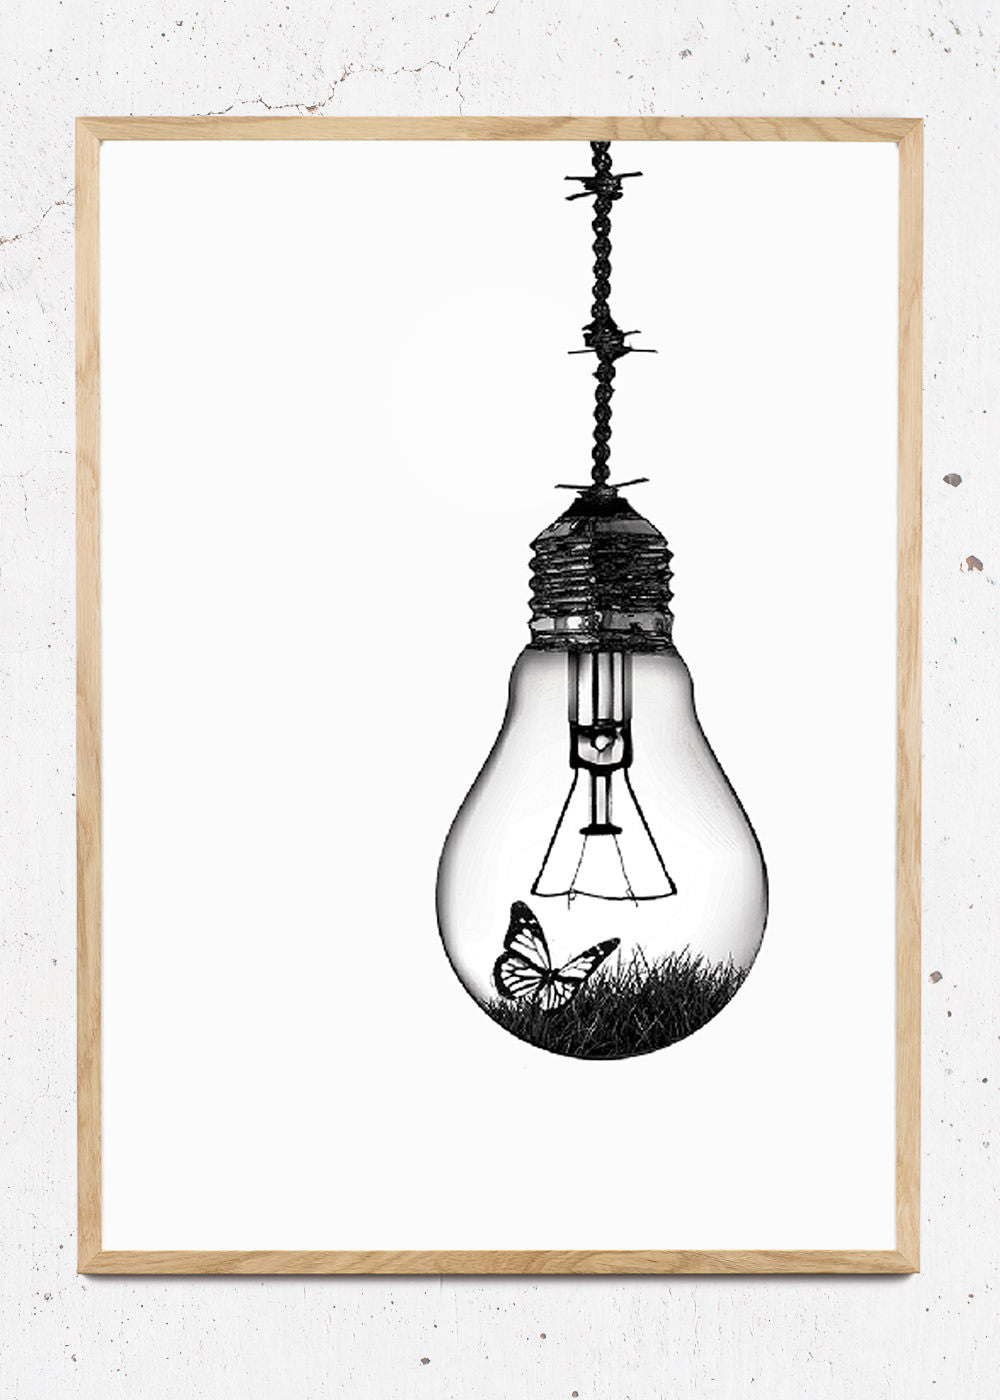 Plakat af Lightbulb fra Hang It Up